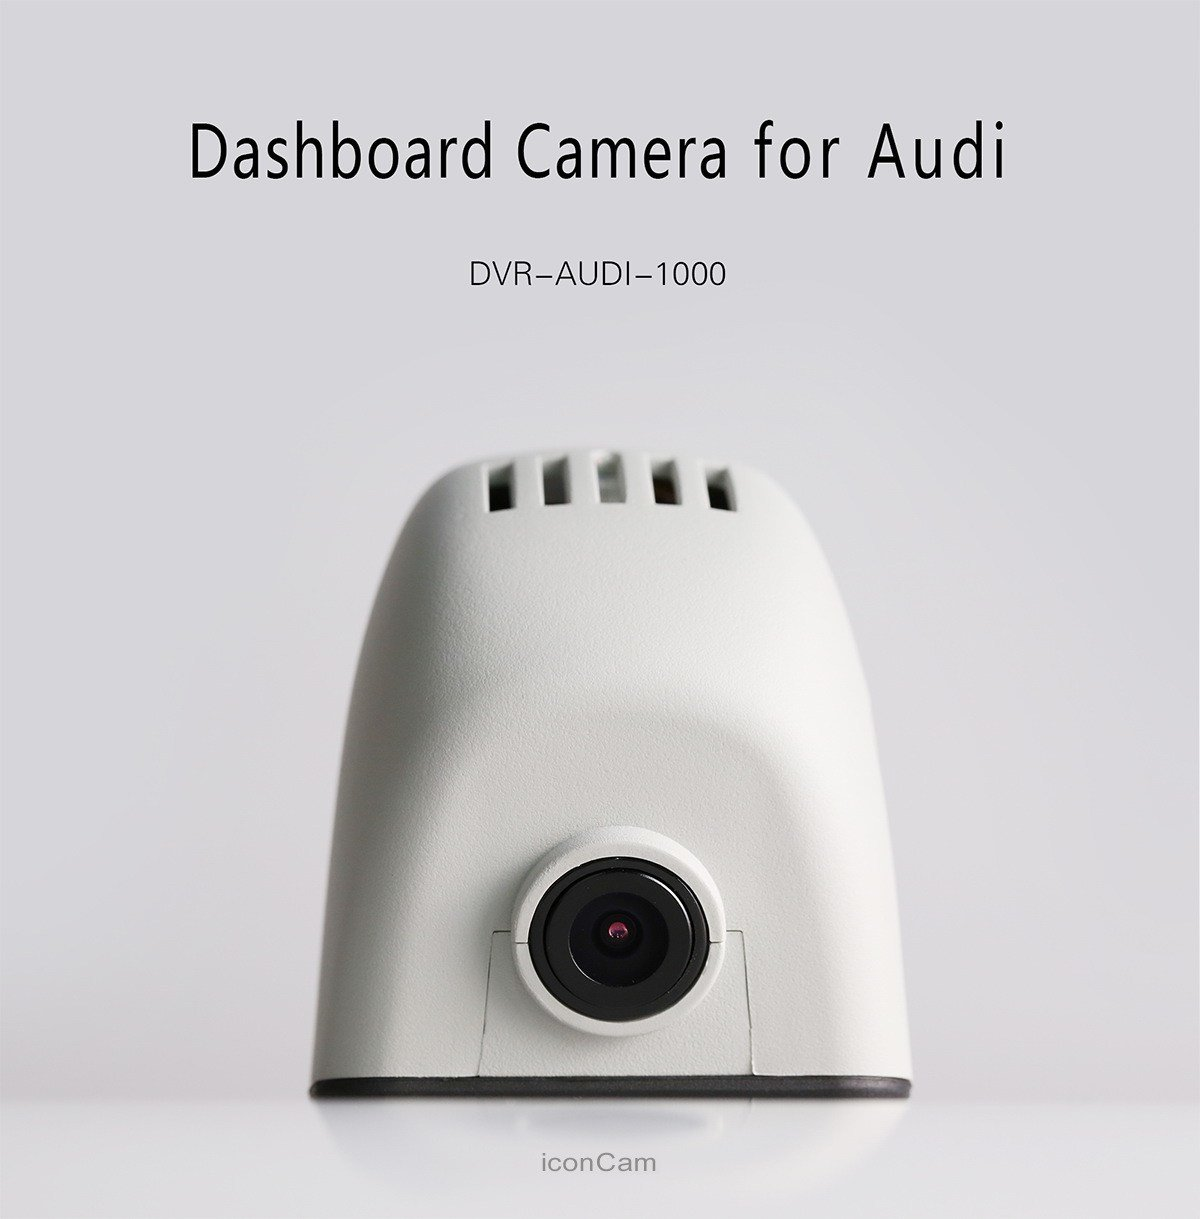 Latest 3Rd Generation Audi Dashcam Black And Whitish Beige Free Download